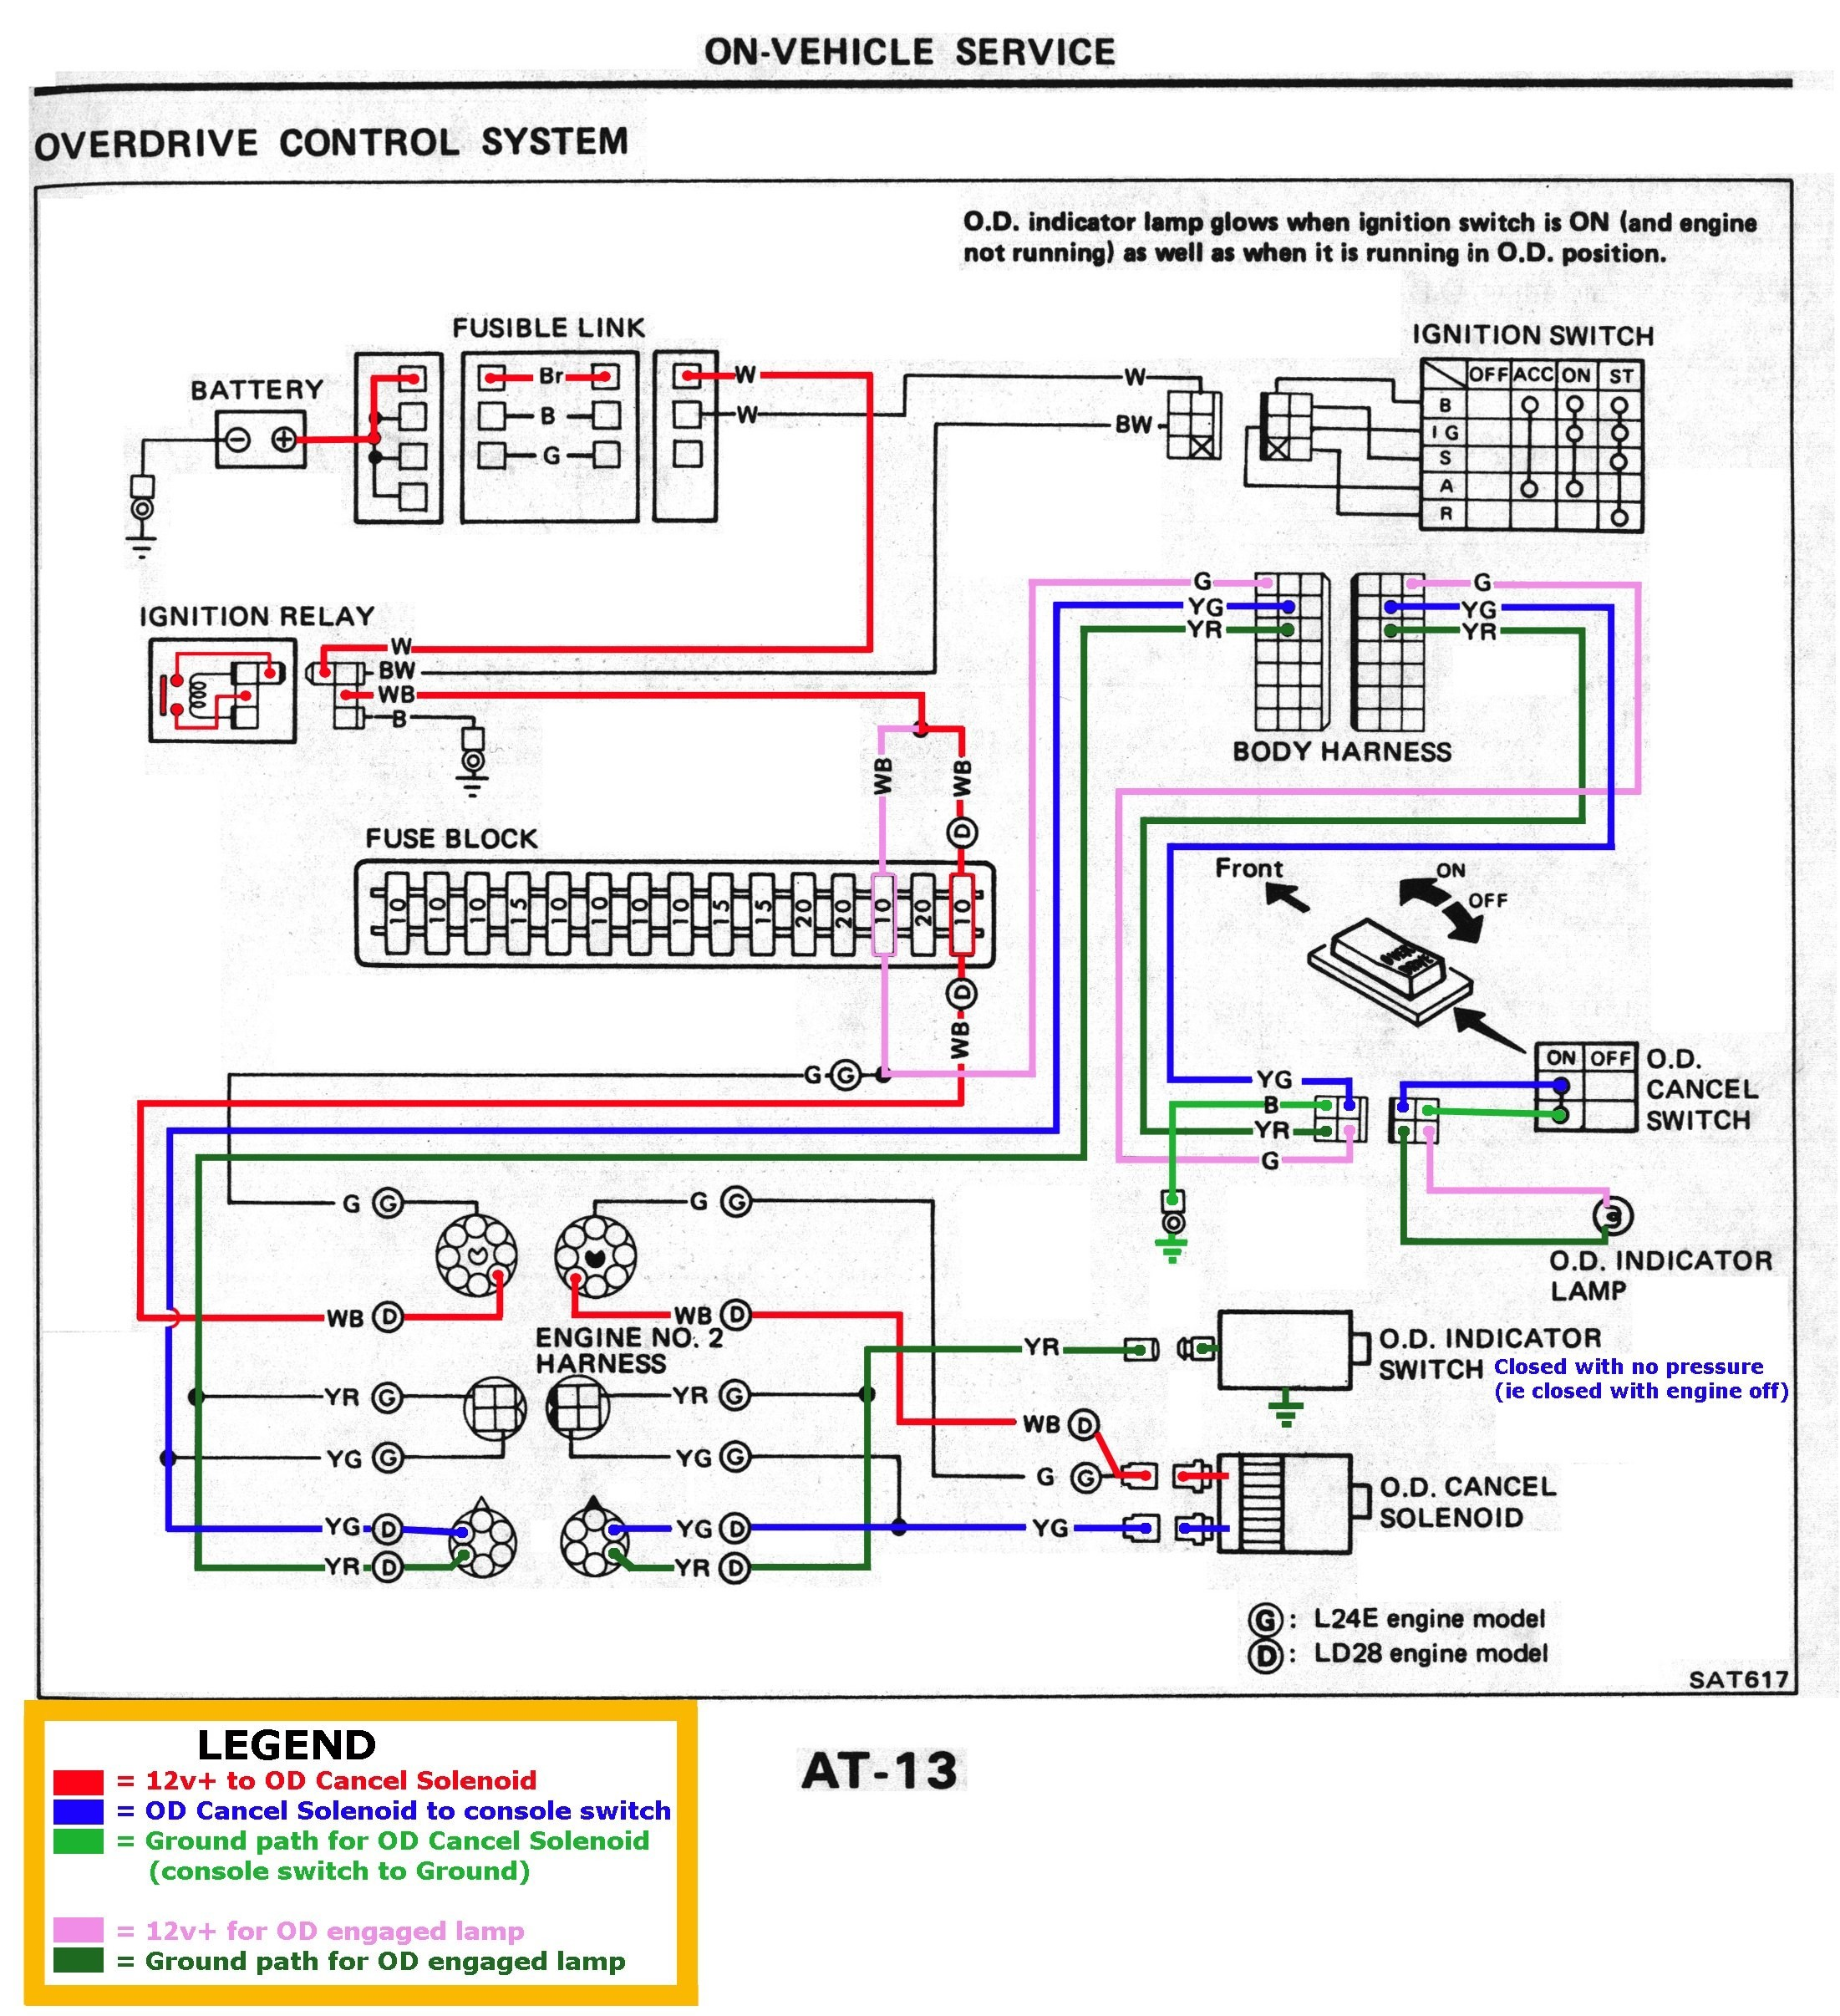 1990 Nissan 300zx Engine Diagram Nissan 300zx Engine Diagram Of 1990 Nissan  300zx Engine Diagram Car